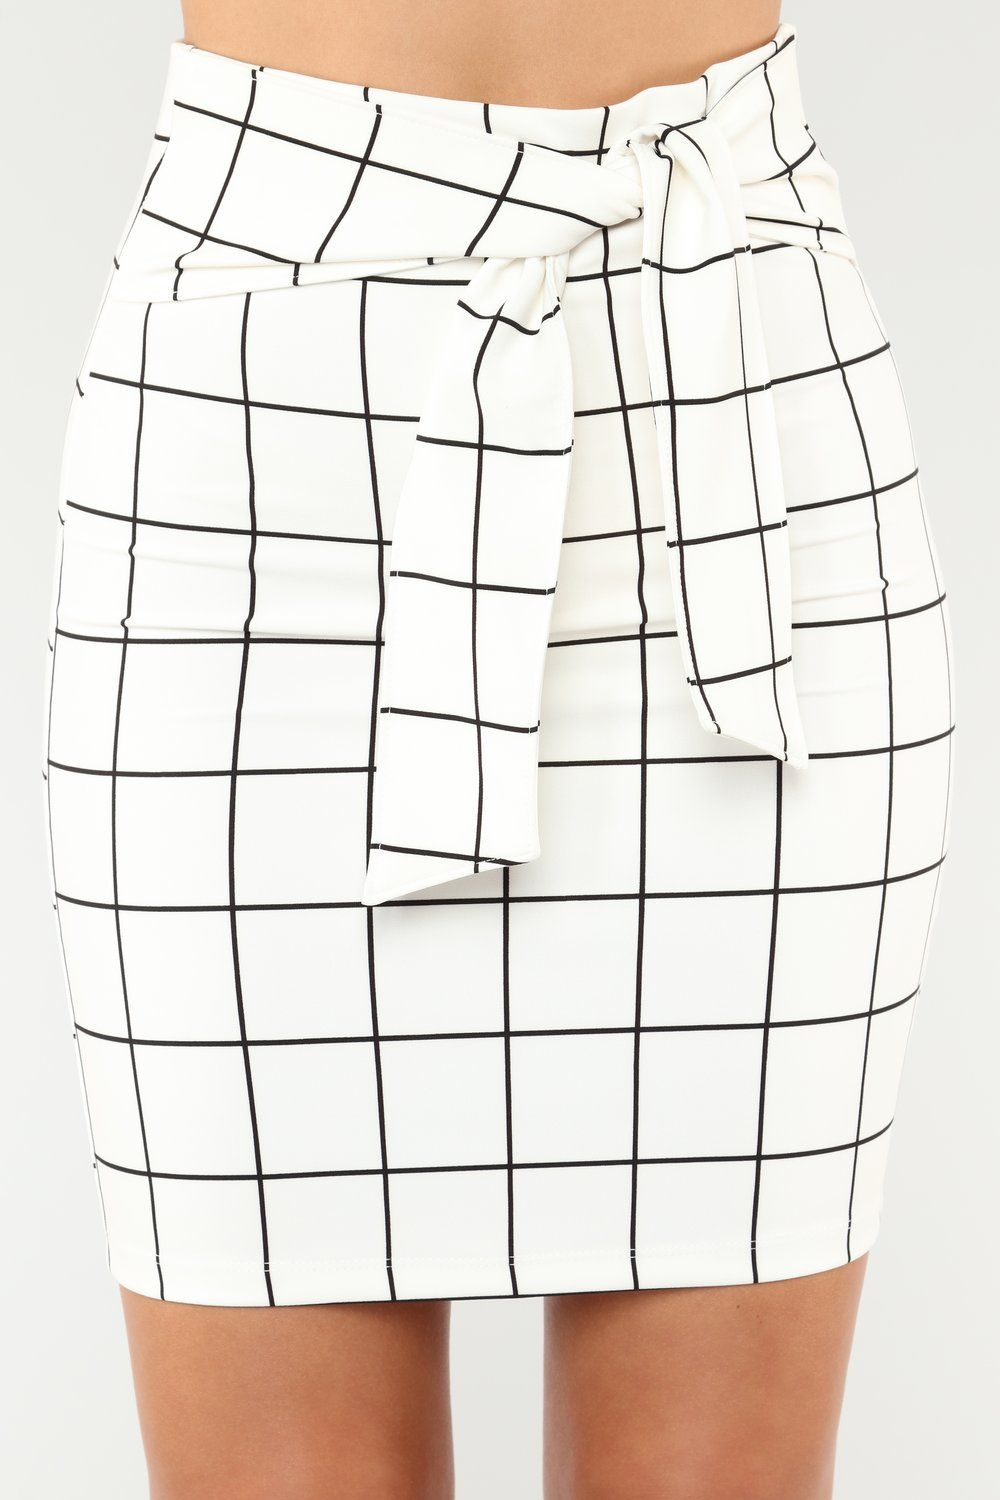 bb610b491 No Loose Ends Tie Waist Skirt - White in 2019 | clothes → bottoms ...